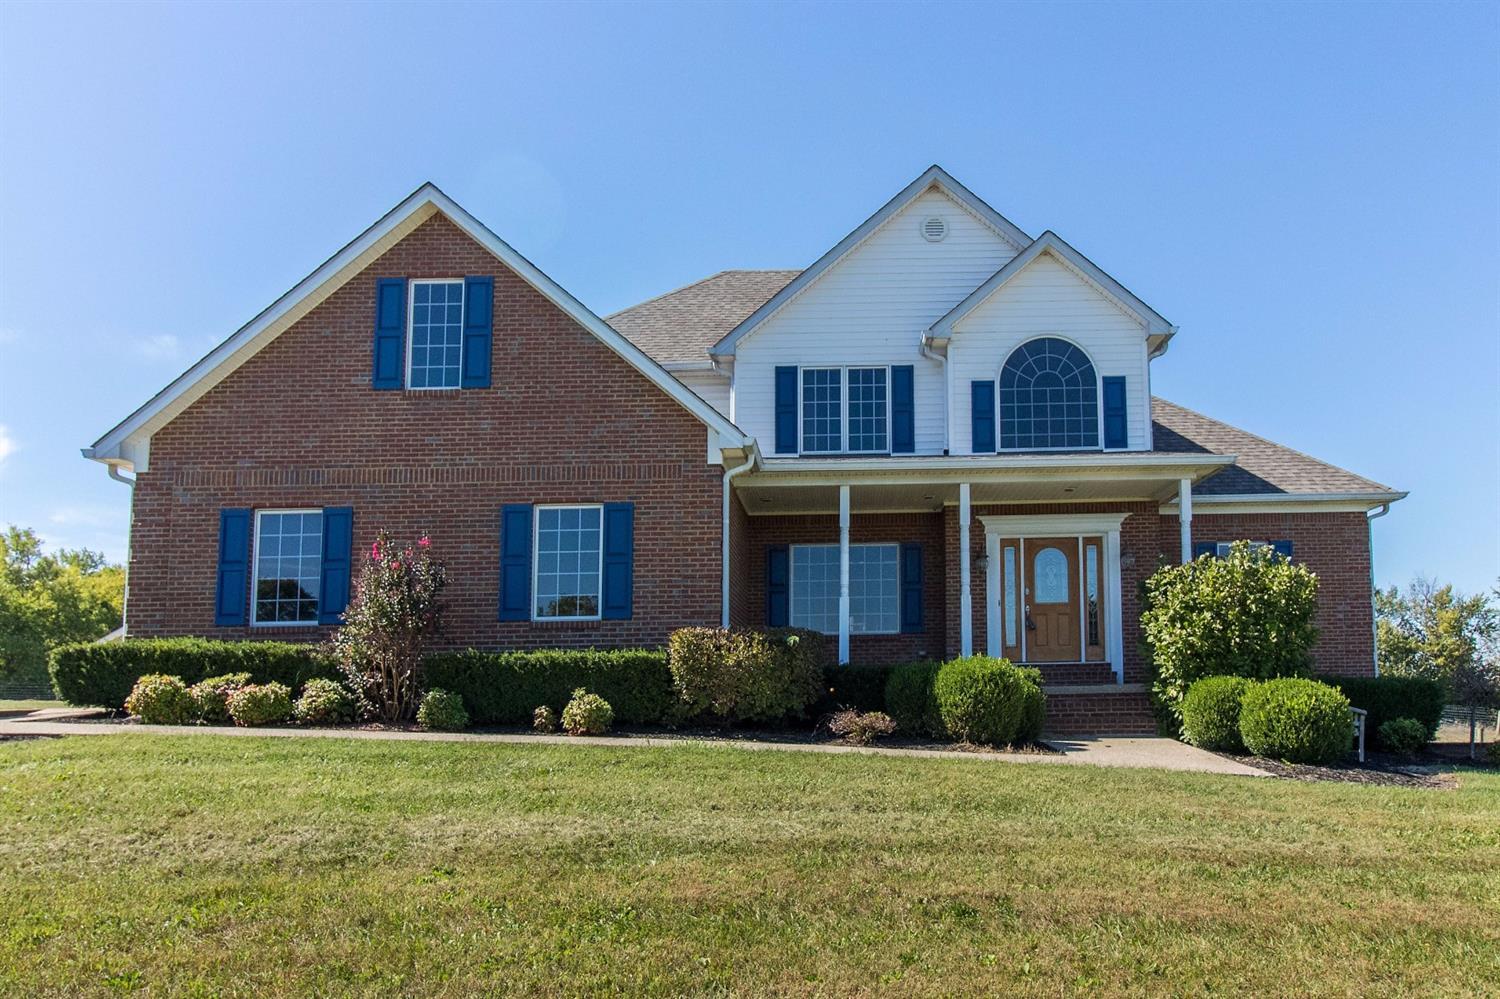 Home For Sale at 315 Quirks Run Rd, Danville, KY 40422